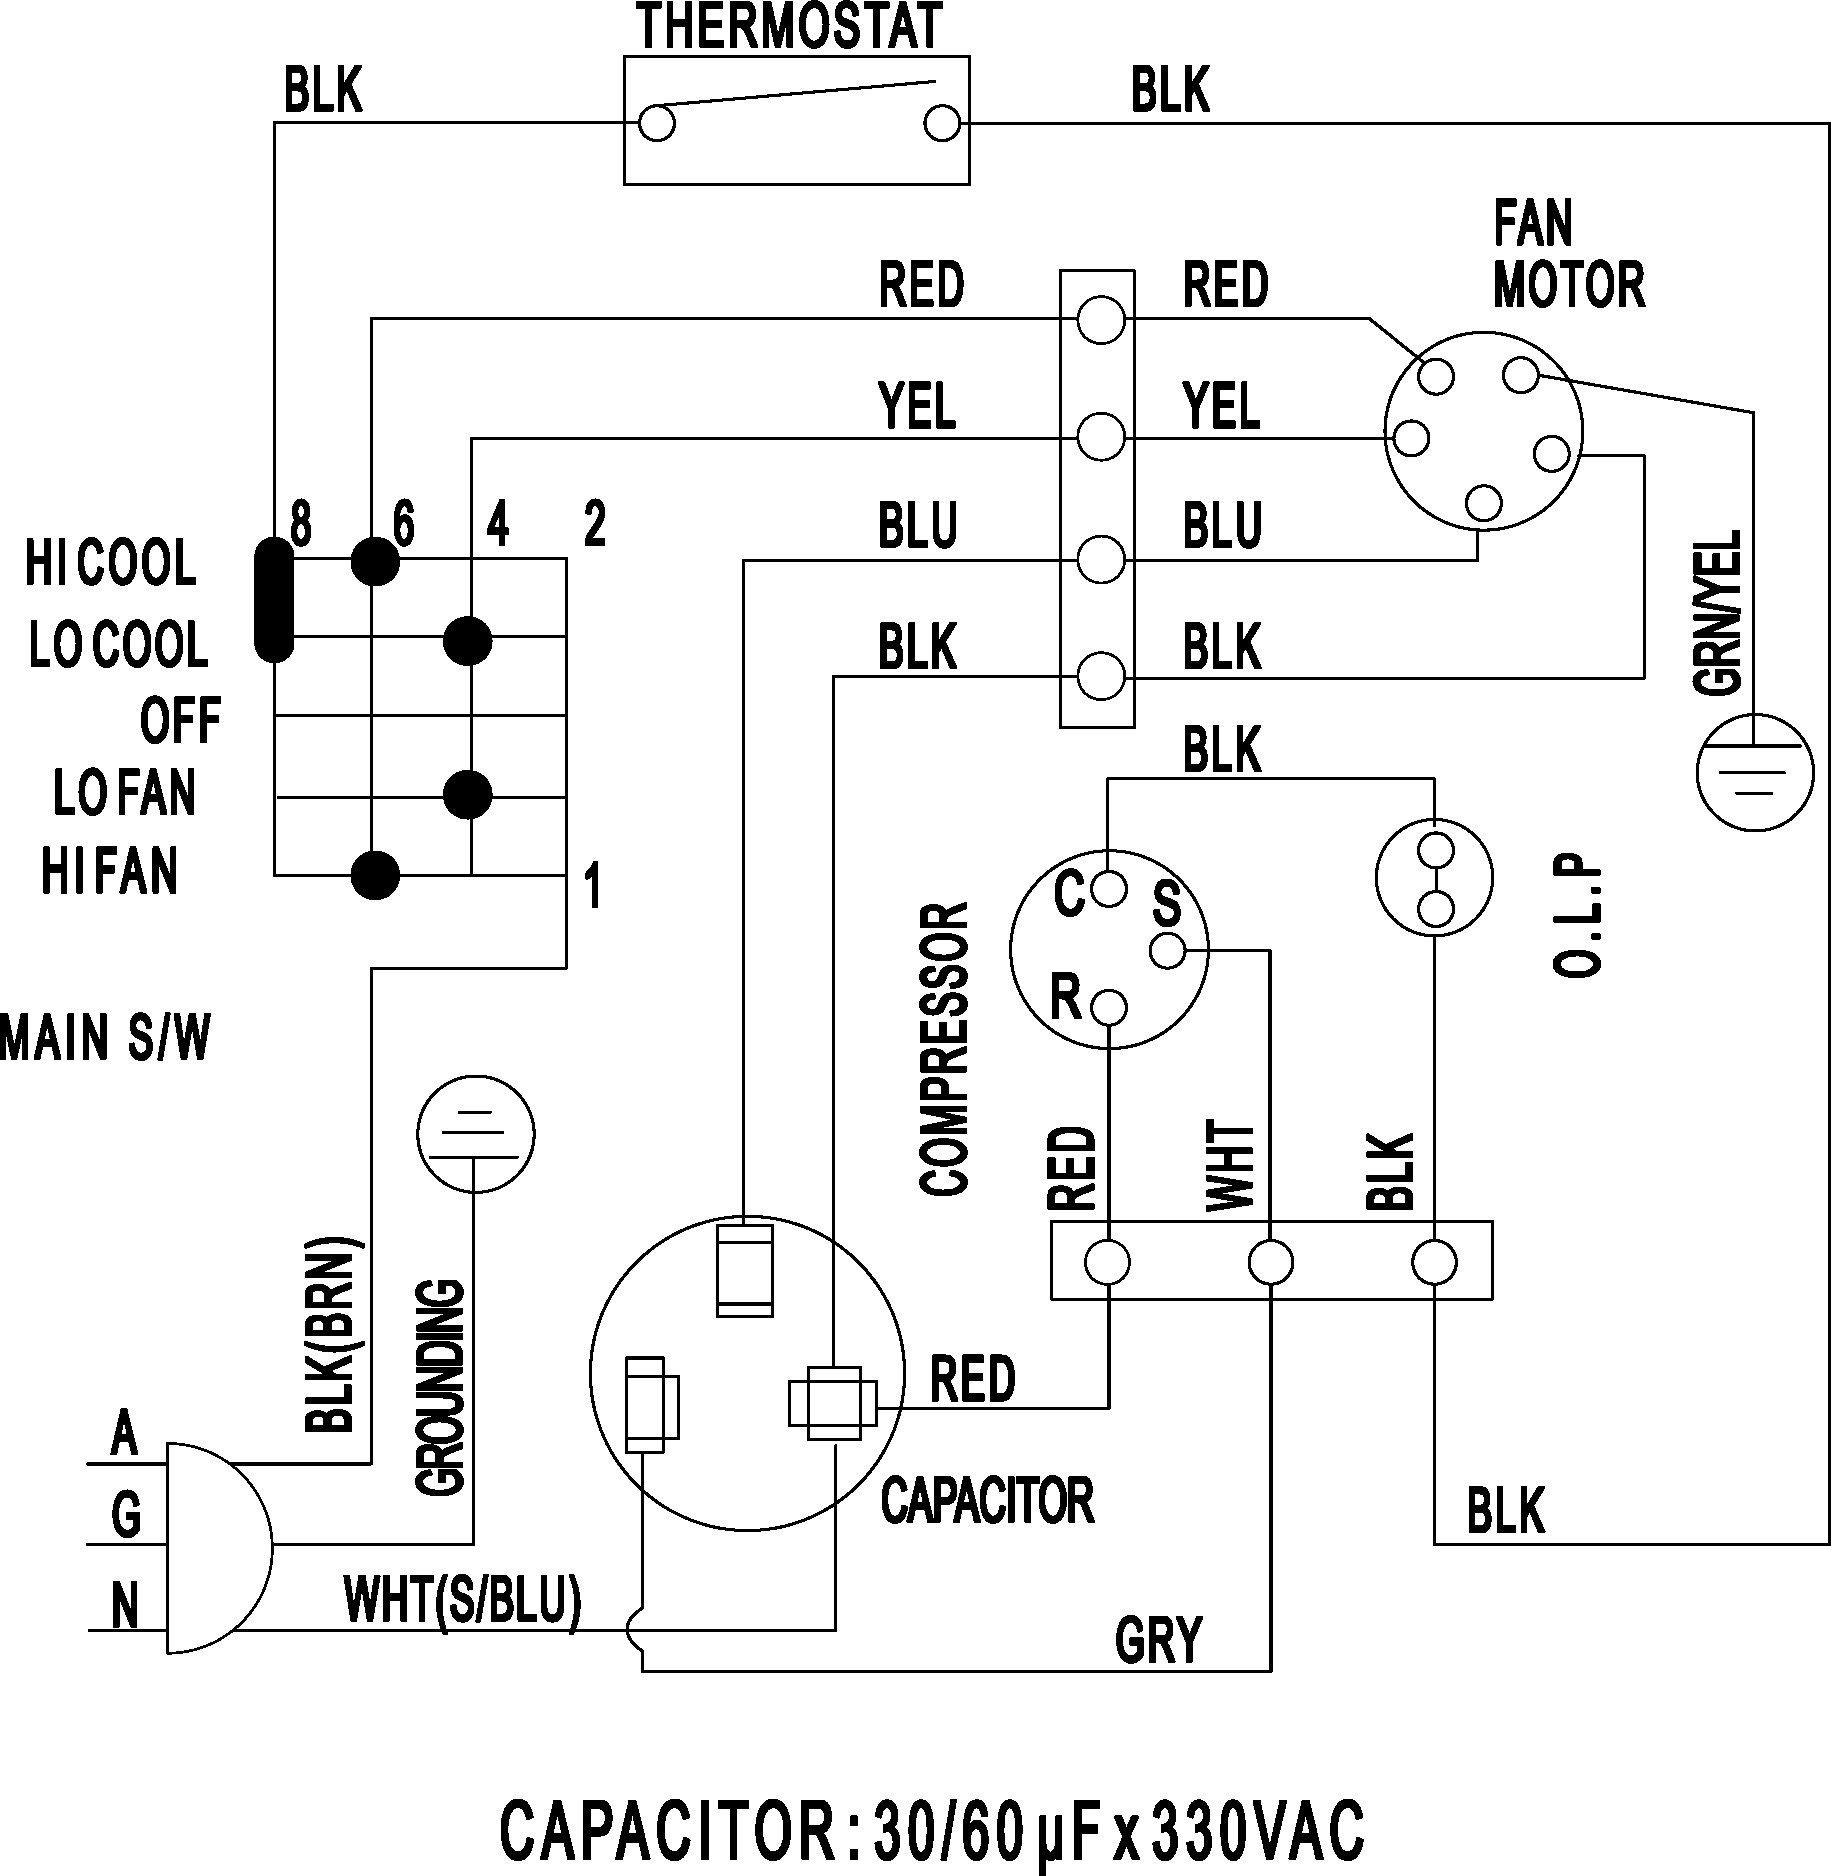 Wiring Diagram Symbols Hvac Wiring Diagram Ac Split Copy Carrier Air Conditioner Fresh Diagrams Of F Electrical Circuit Diagram Ac Wiring Ac Capacitor